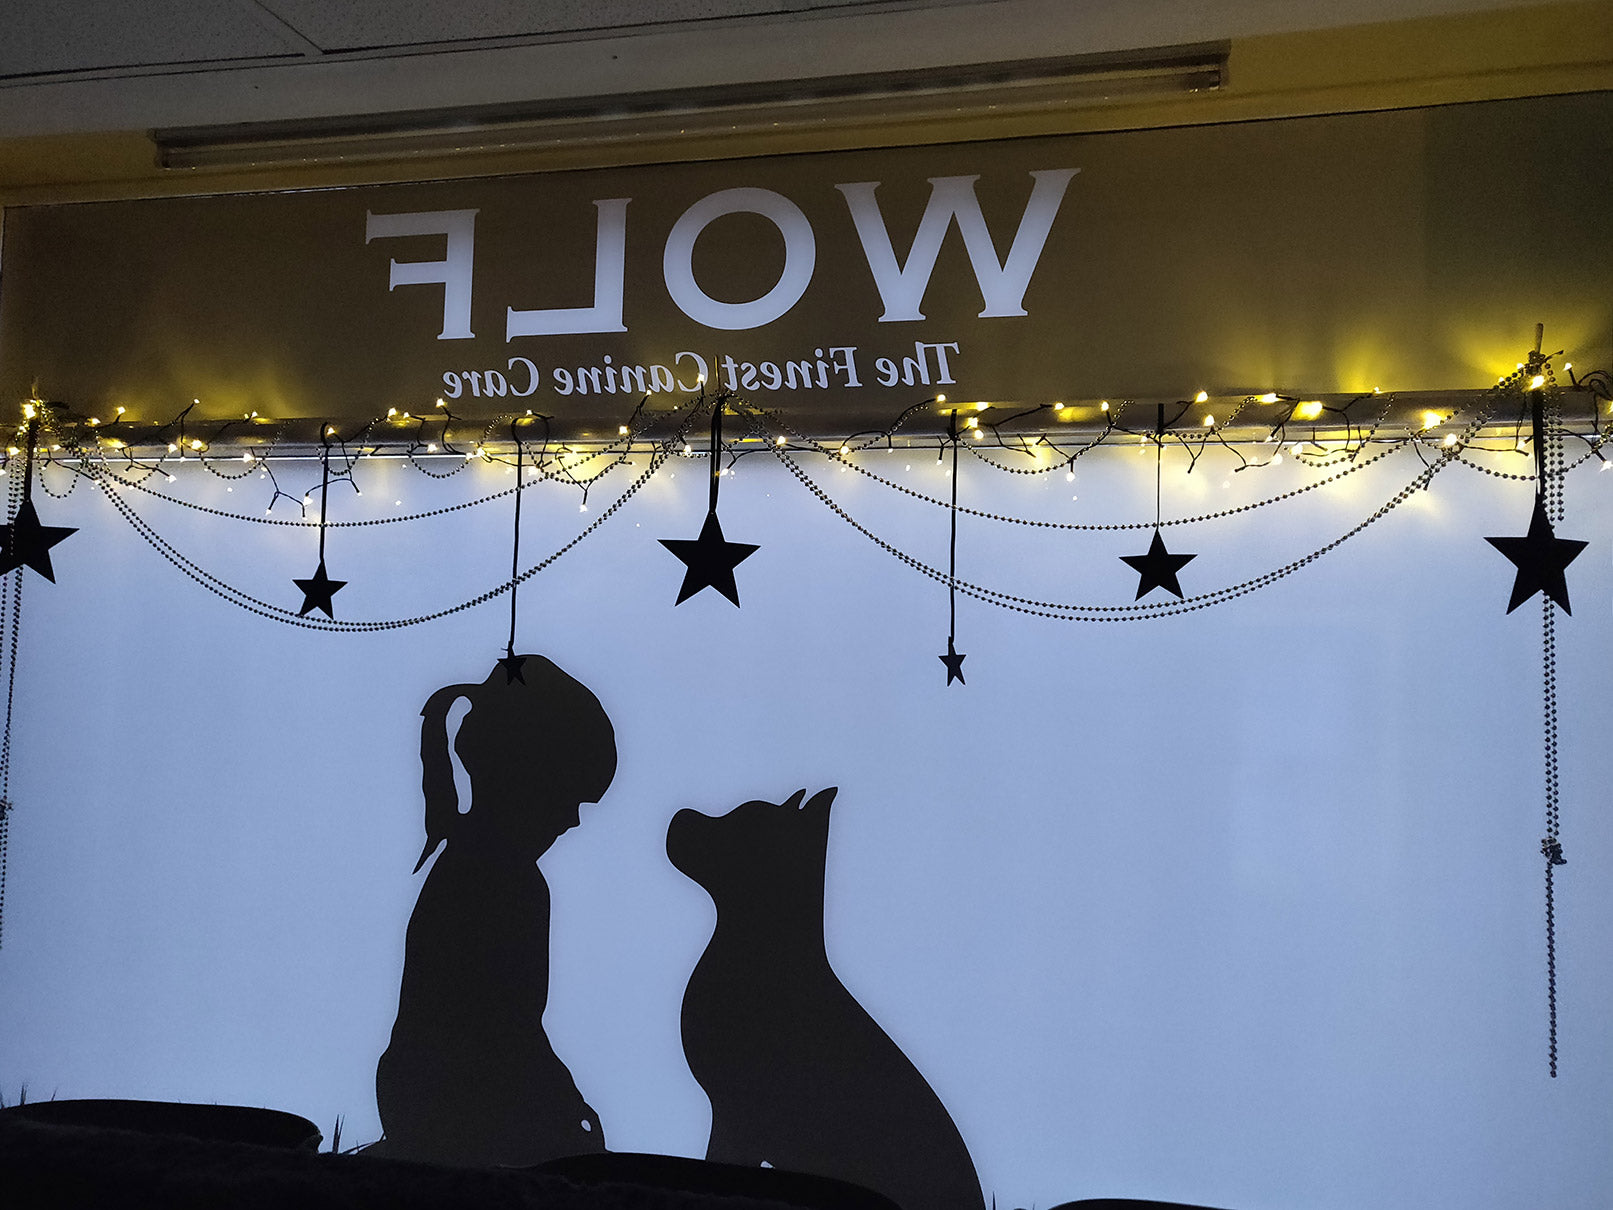 window for canine care company, hung with stars